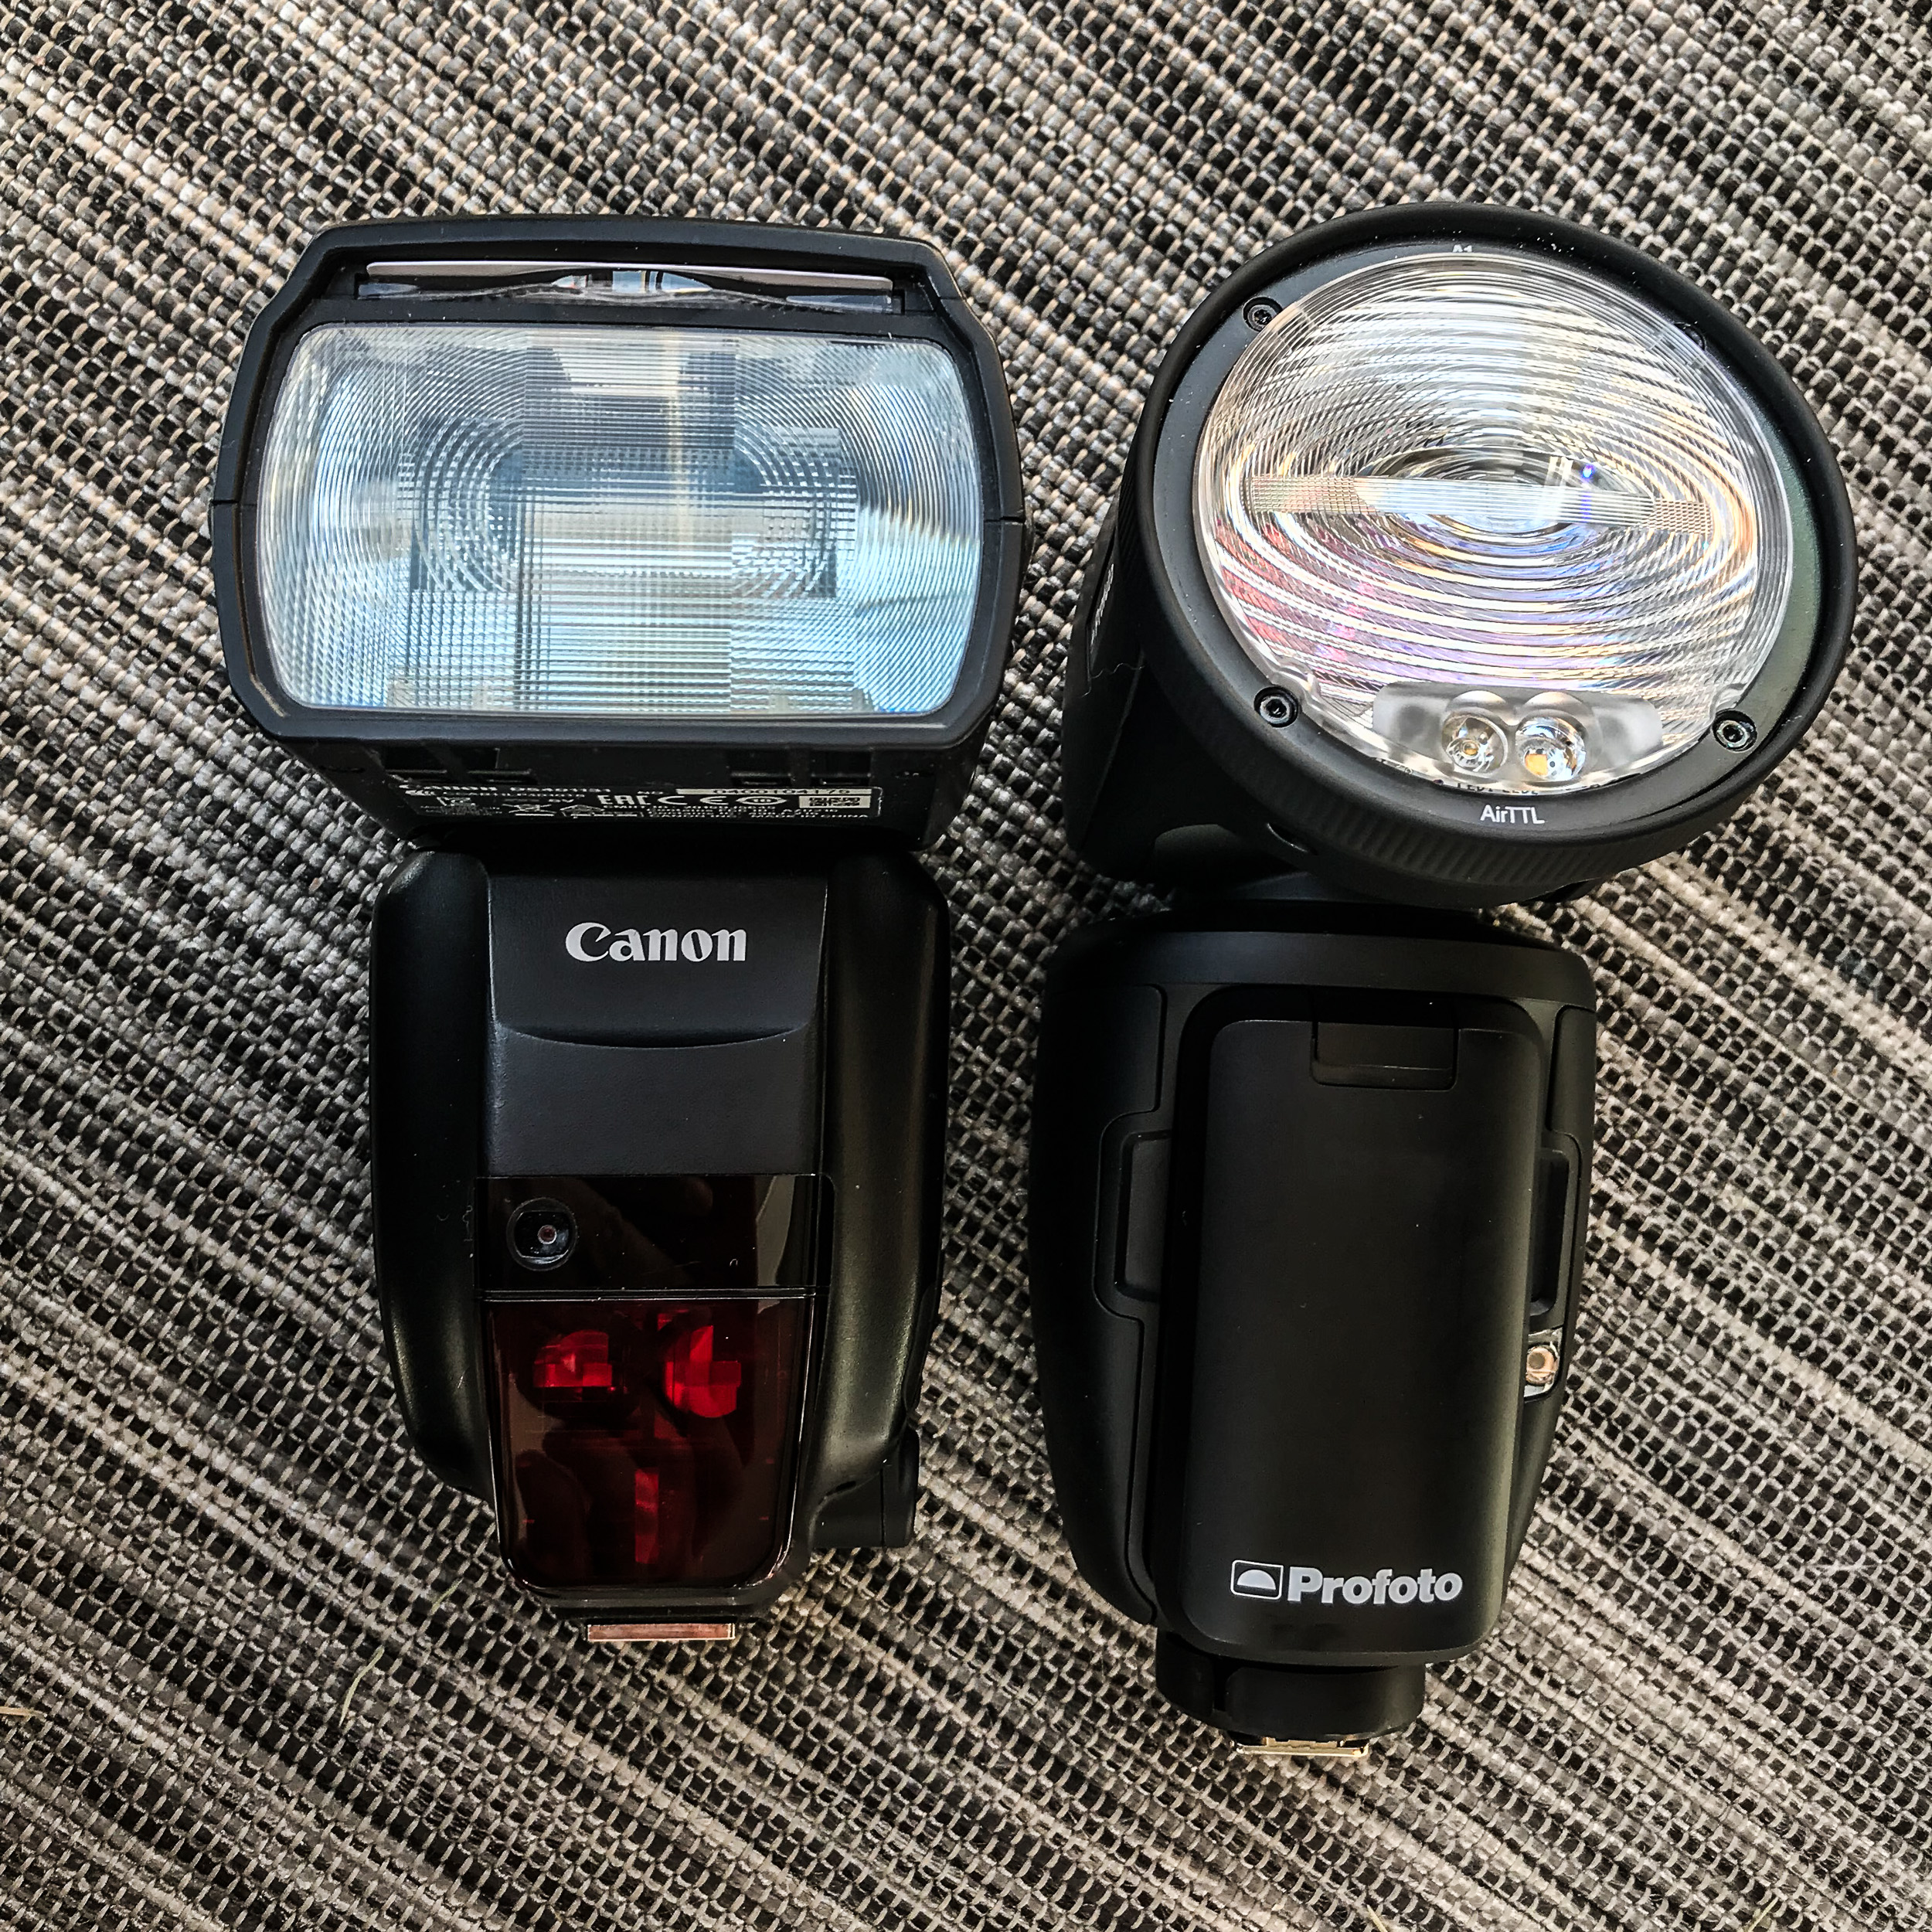 On the left my Canon 600 EXII-RT TTL and on the right the Profoto A1 AirTTL-C from Rajala Pro Shop